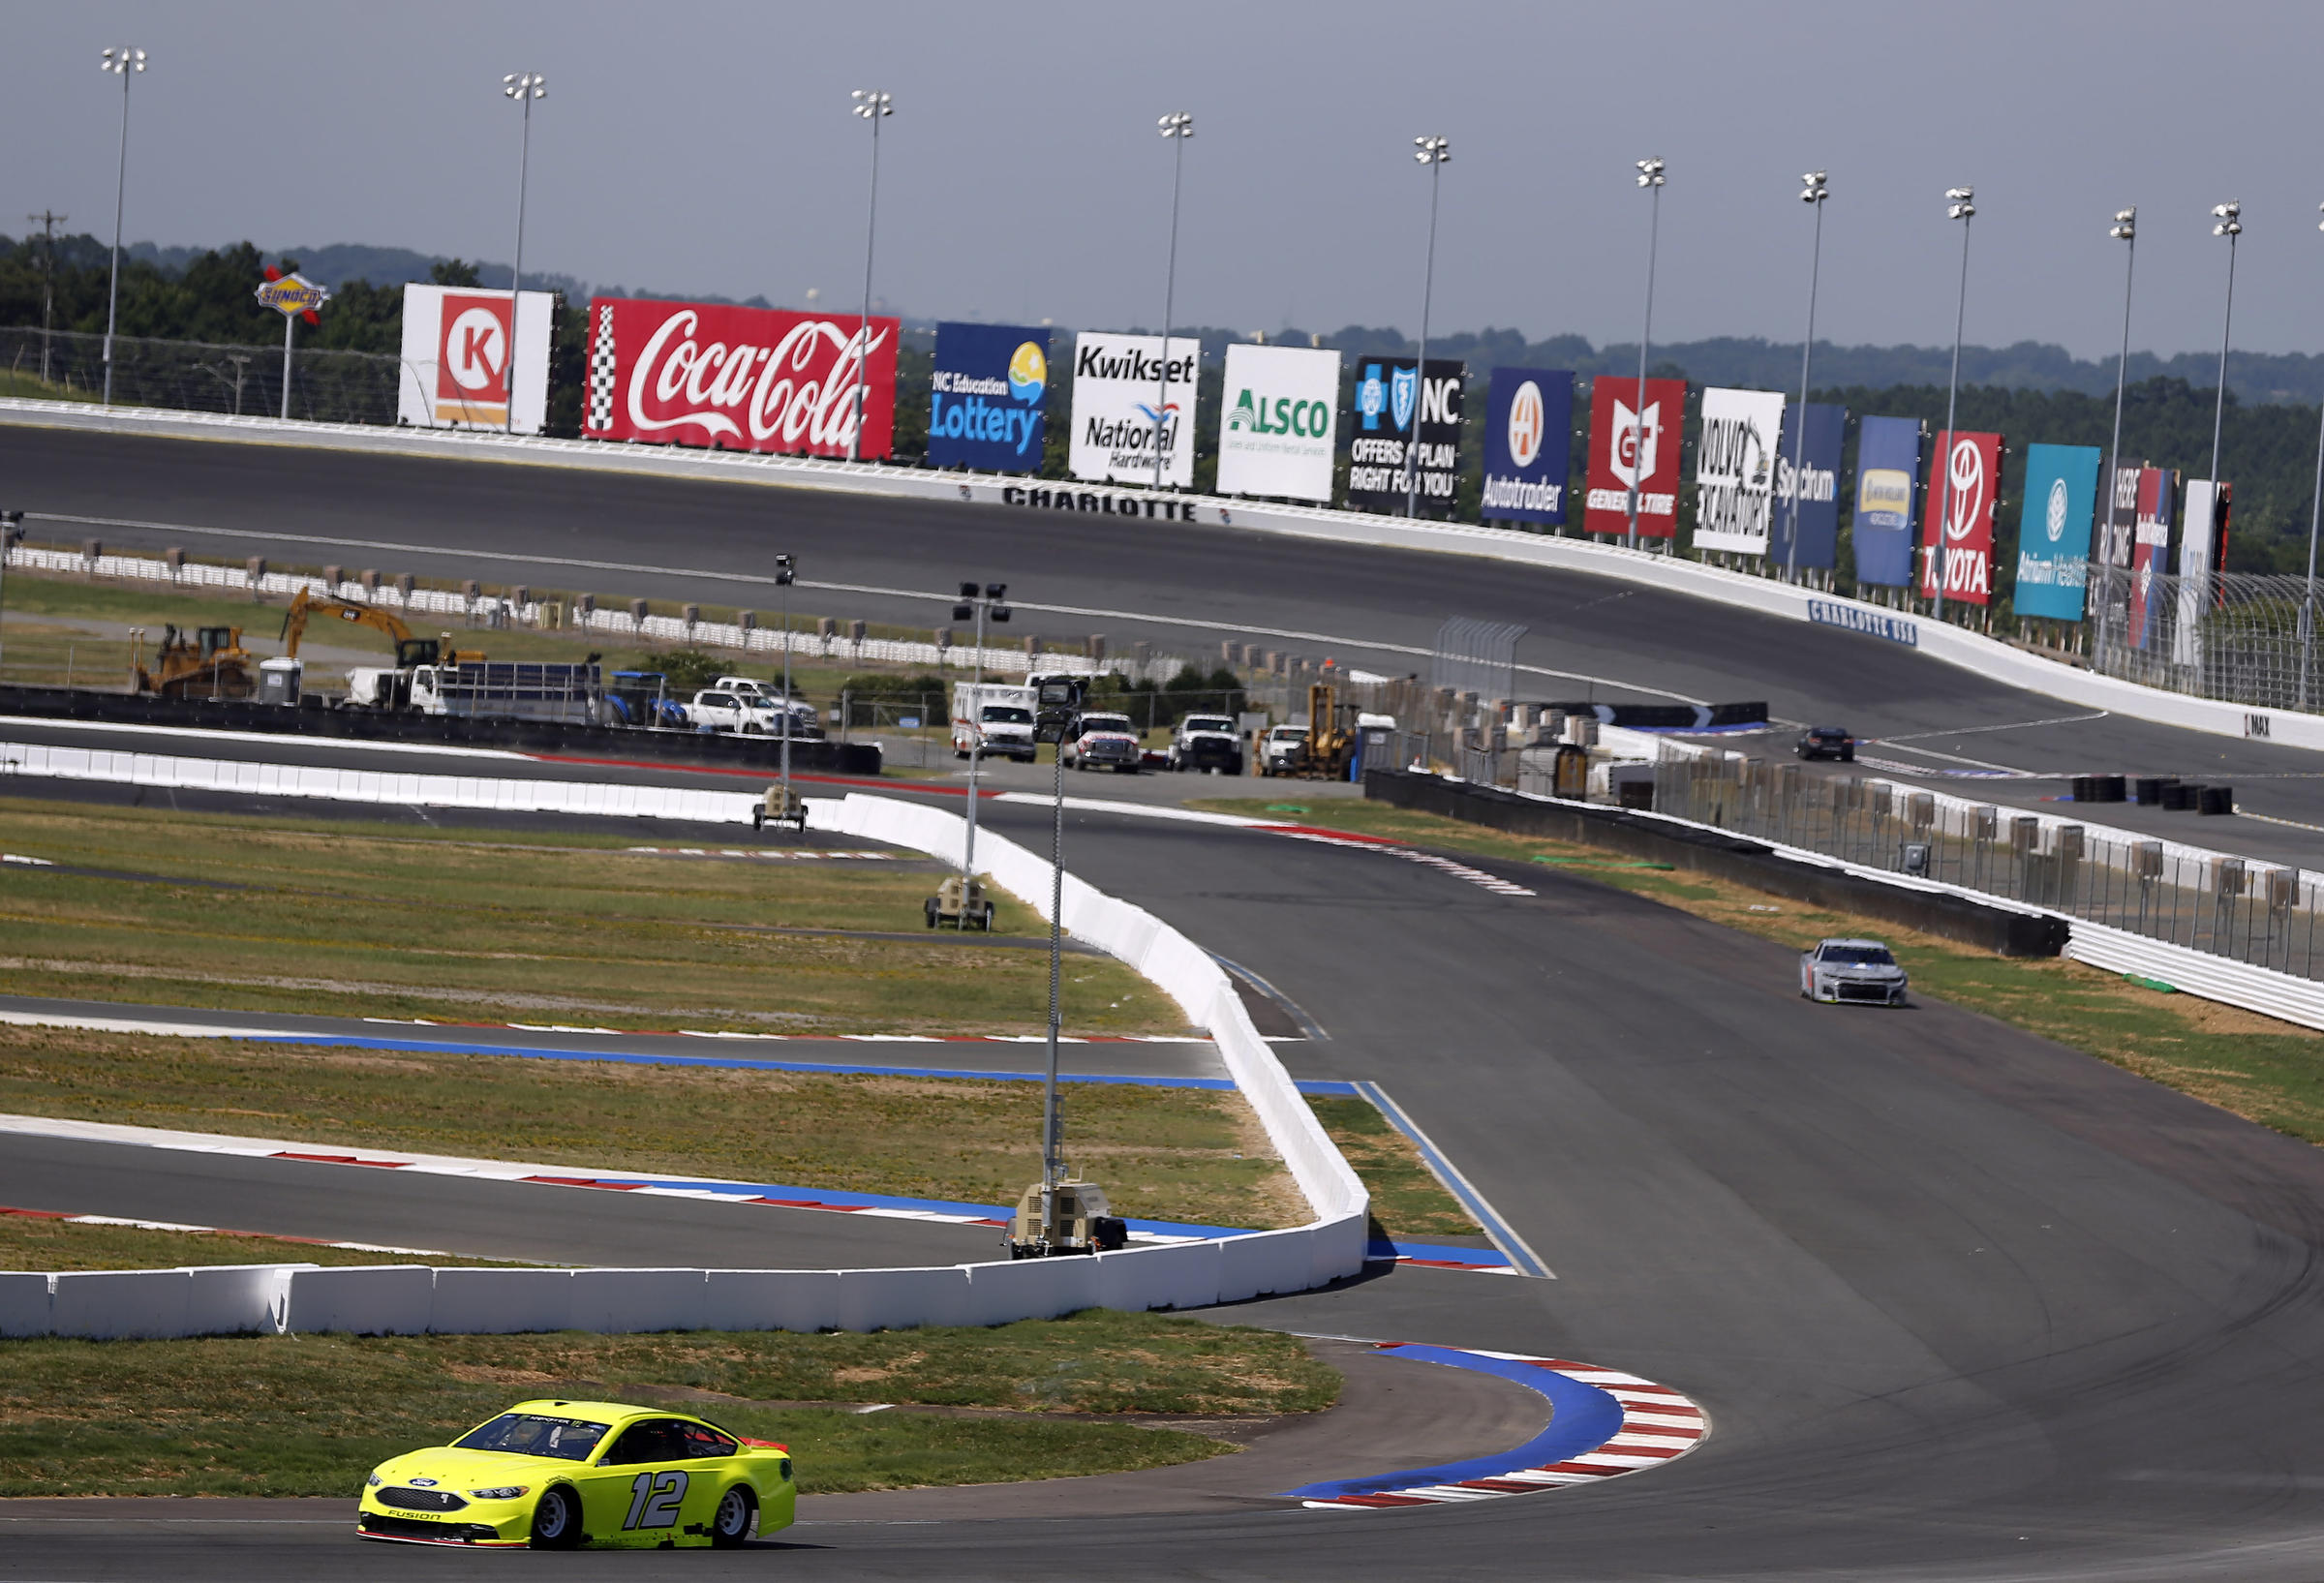 Sundays NASCAR Race Wont Be An Oval But A Roval WFAE - Charlotte motor speedway events car show